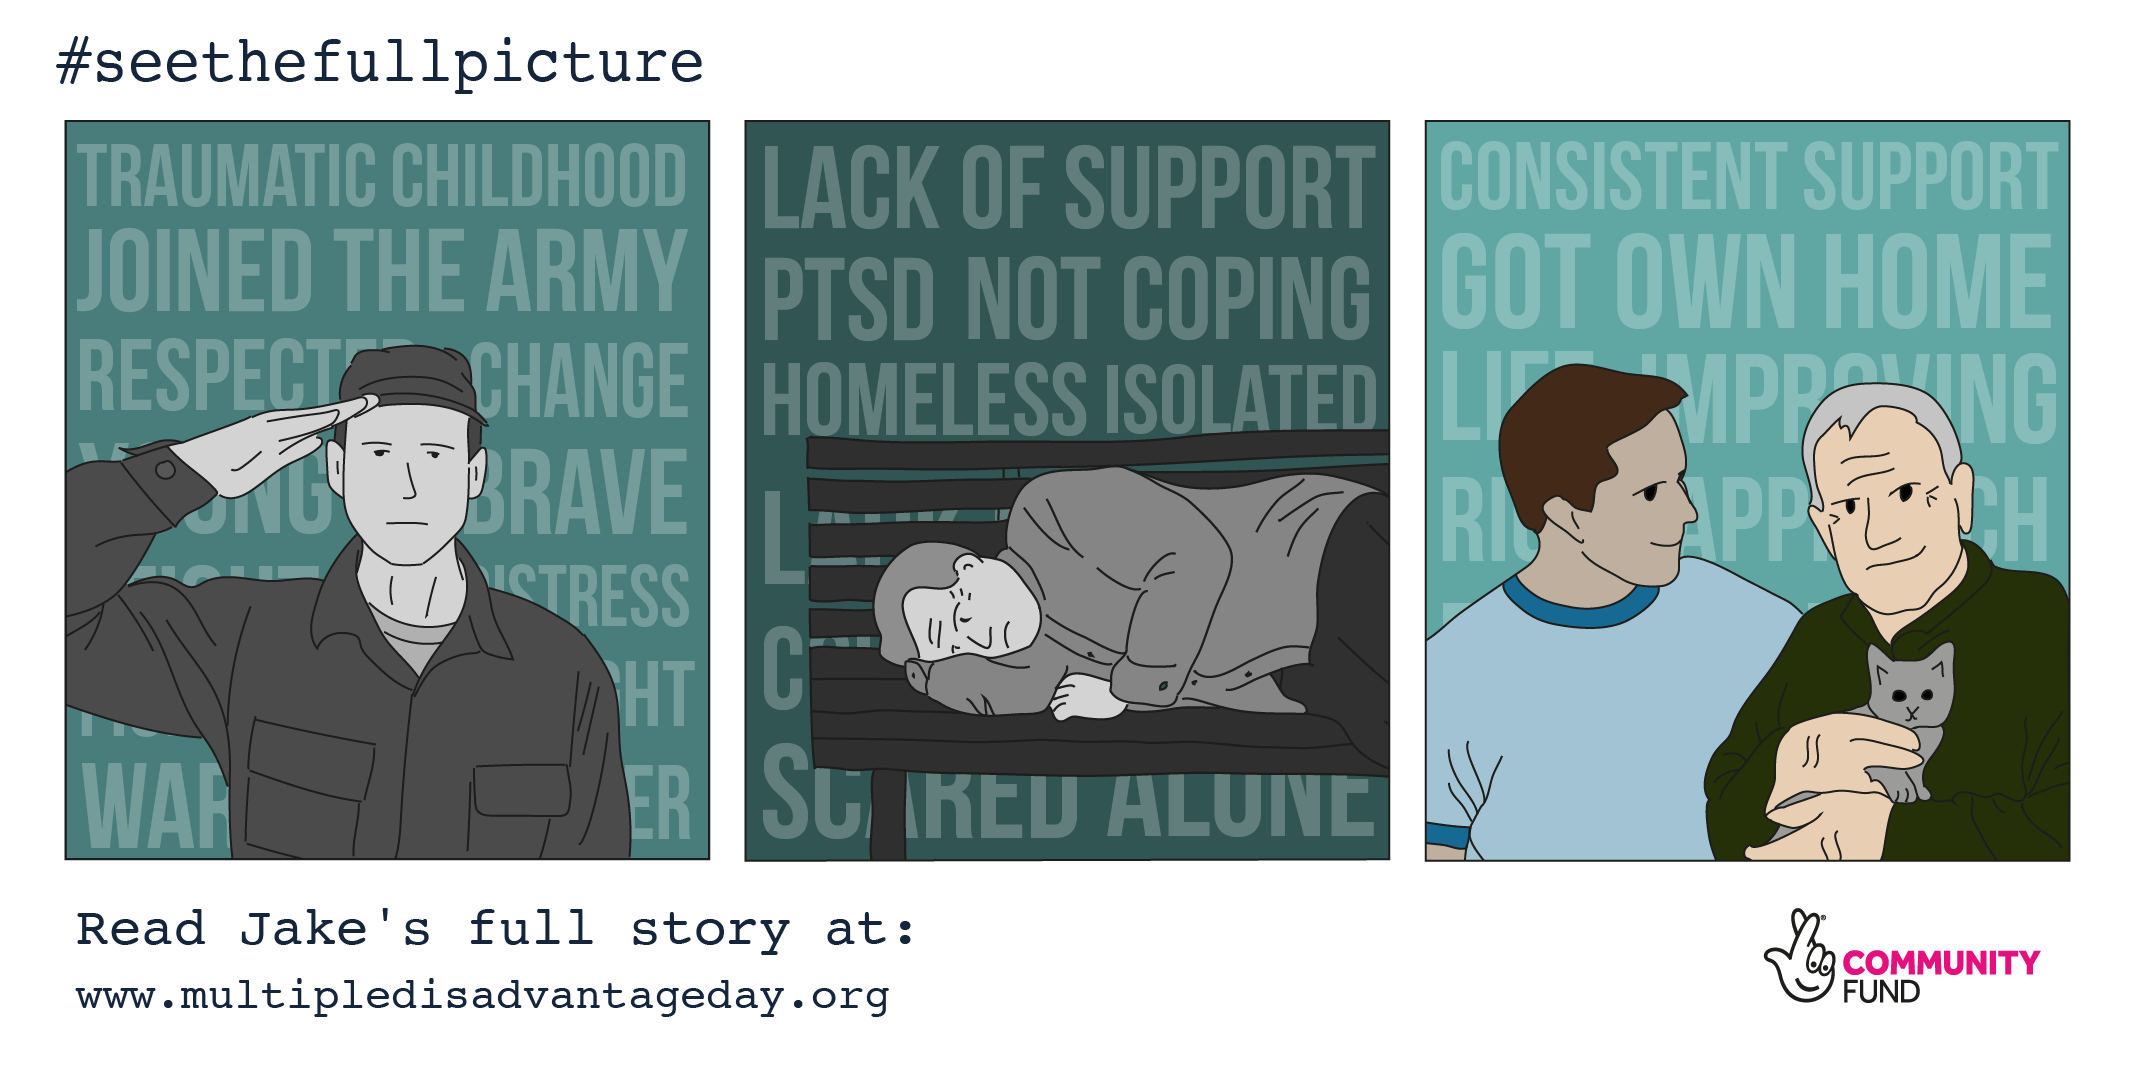 Multiple Disadvantage Day - #seethefullpicture - Campaign Graphics - True Stories - Jakes' Story